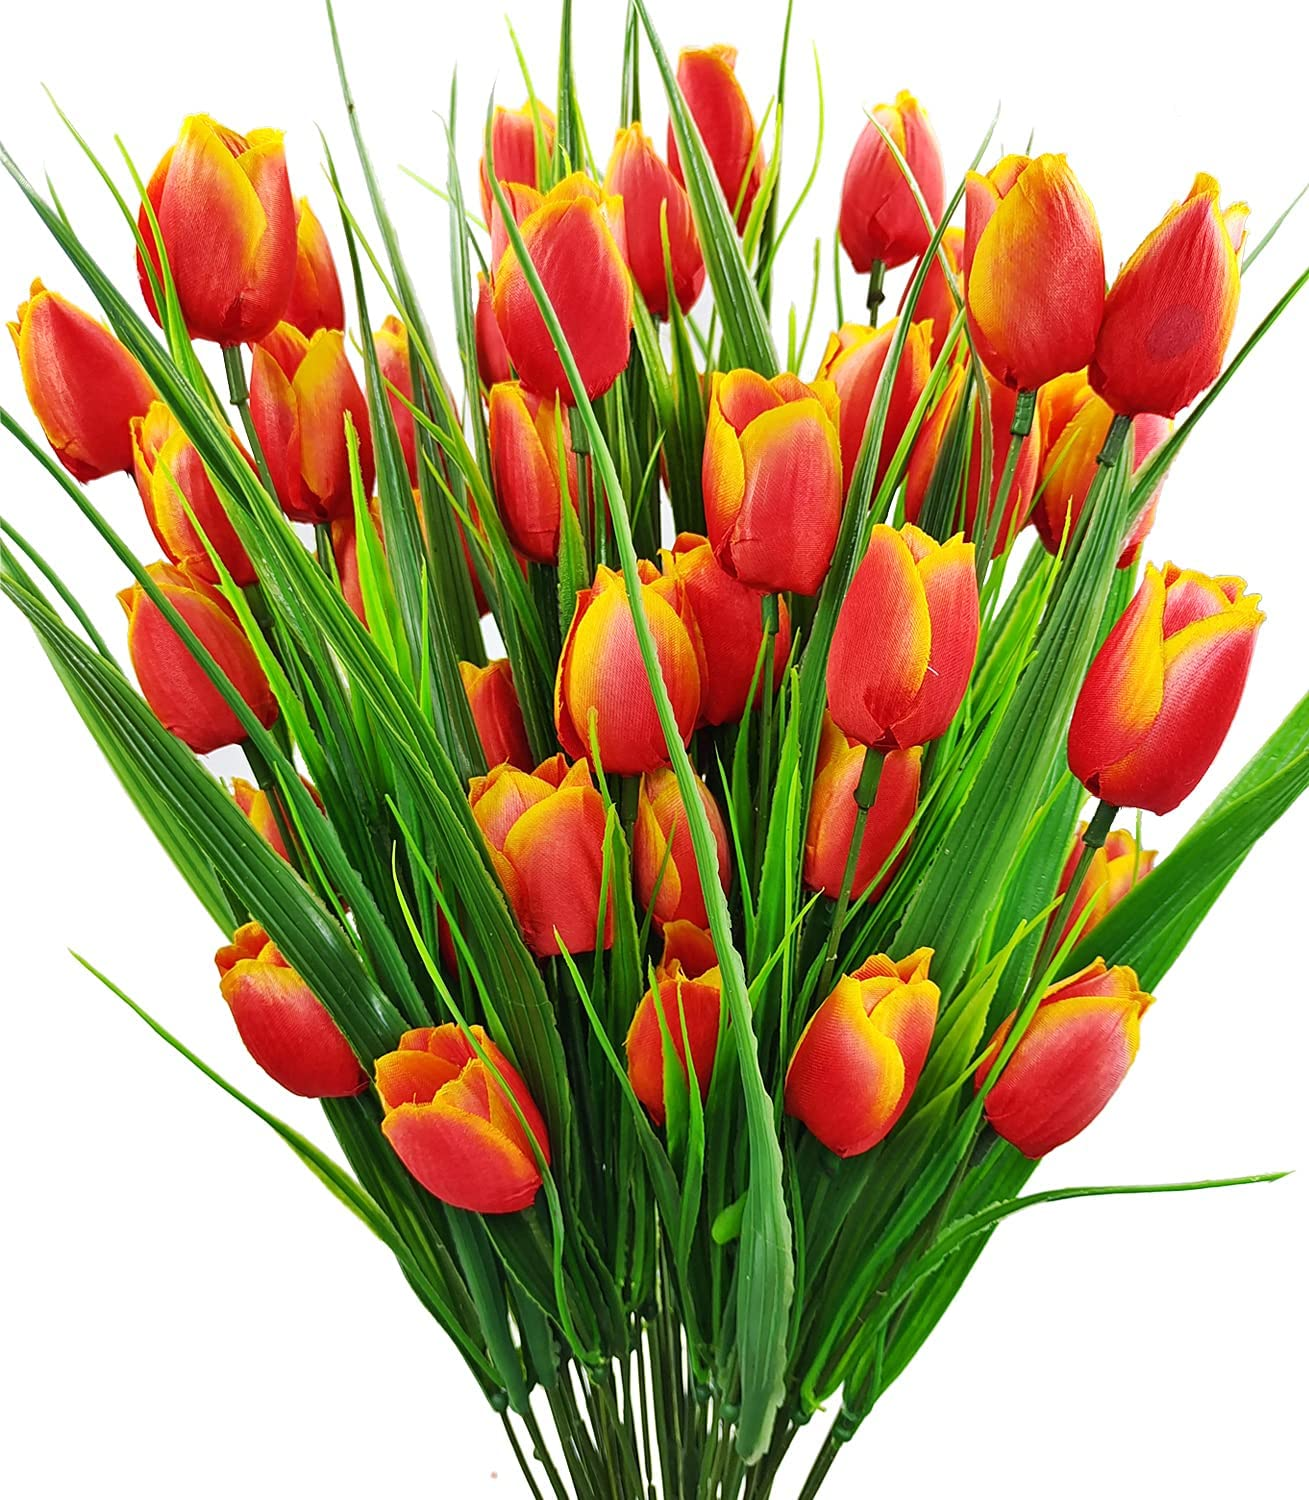 Guagb 8 In stock Bundles Outdoor Artificial Fake OFFicial Tulips Flowers UV Resist